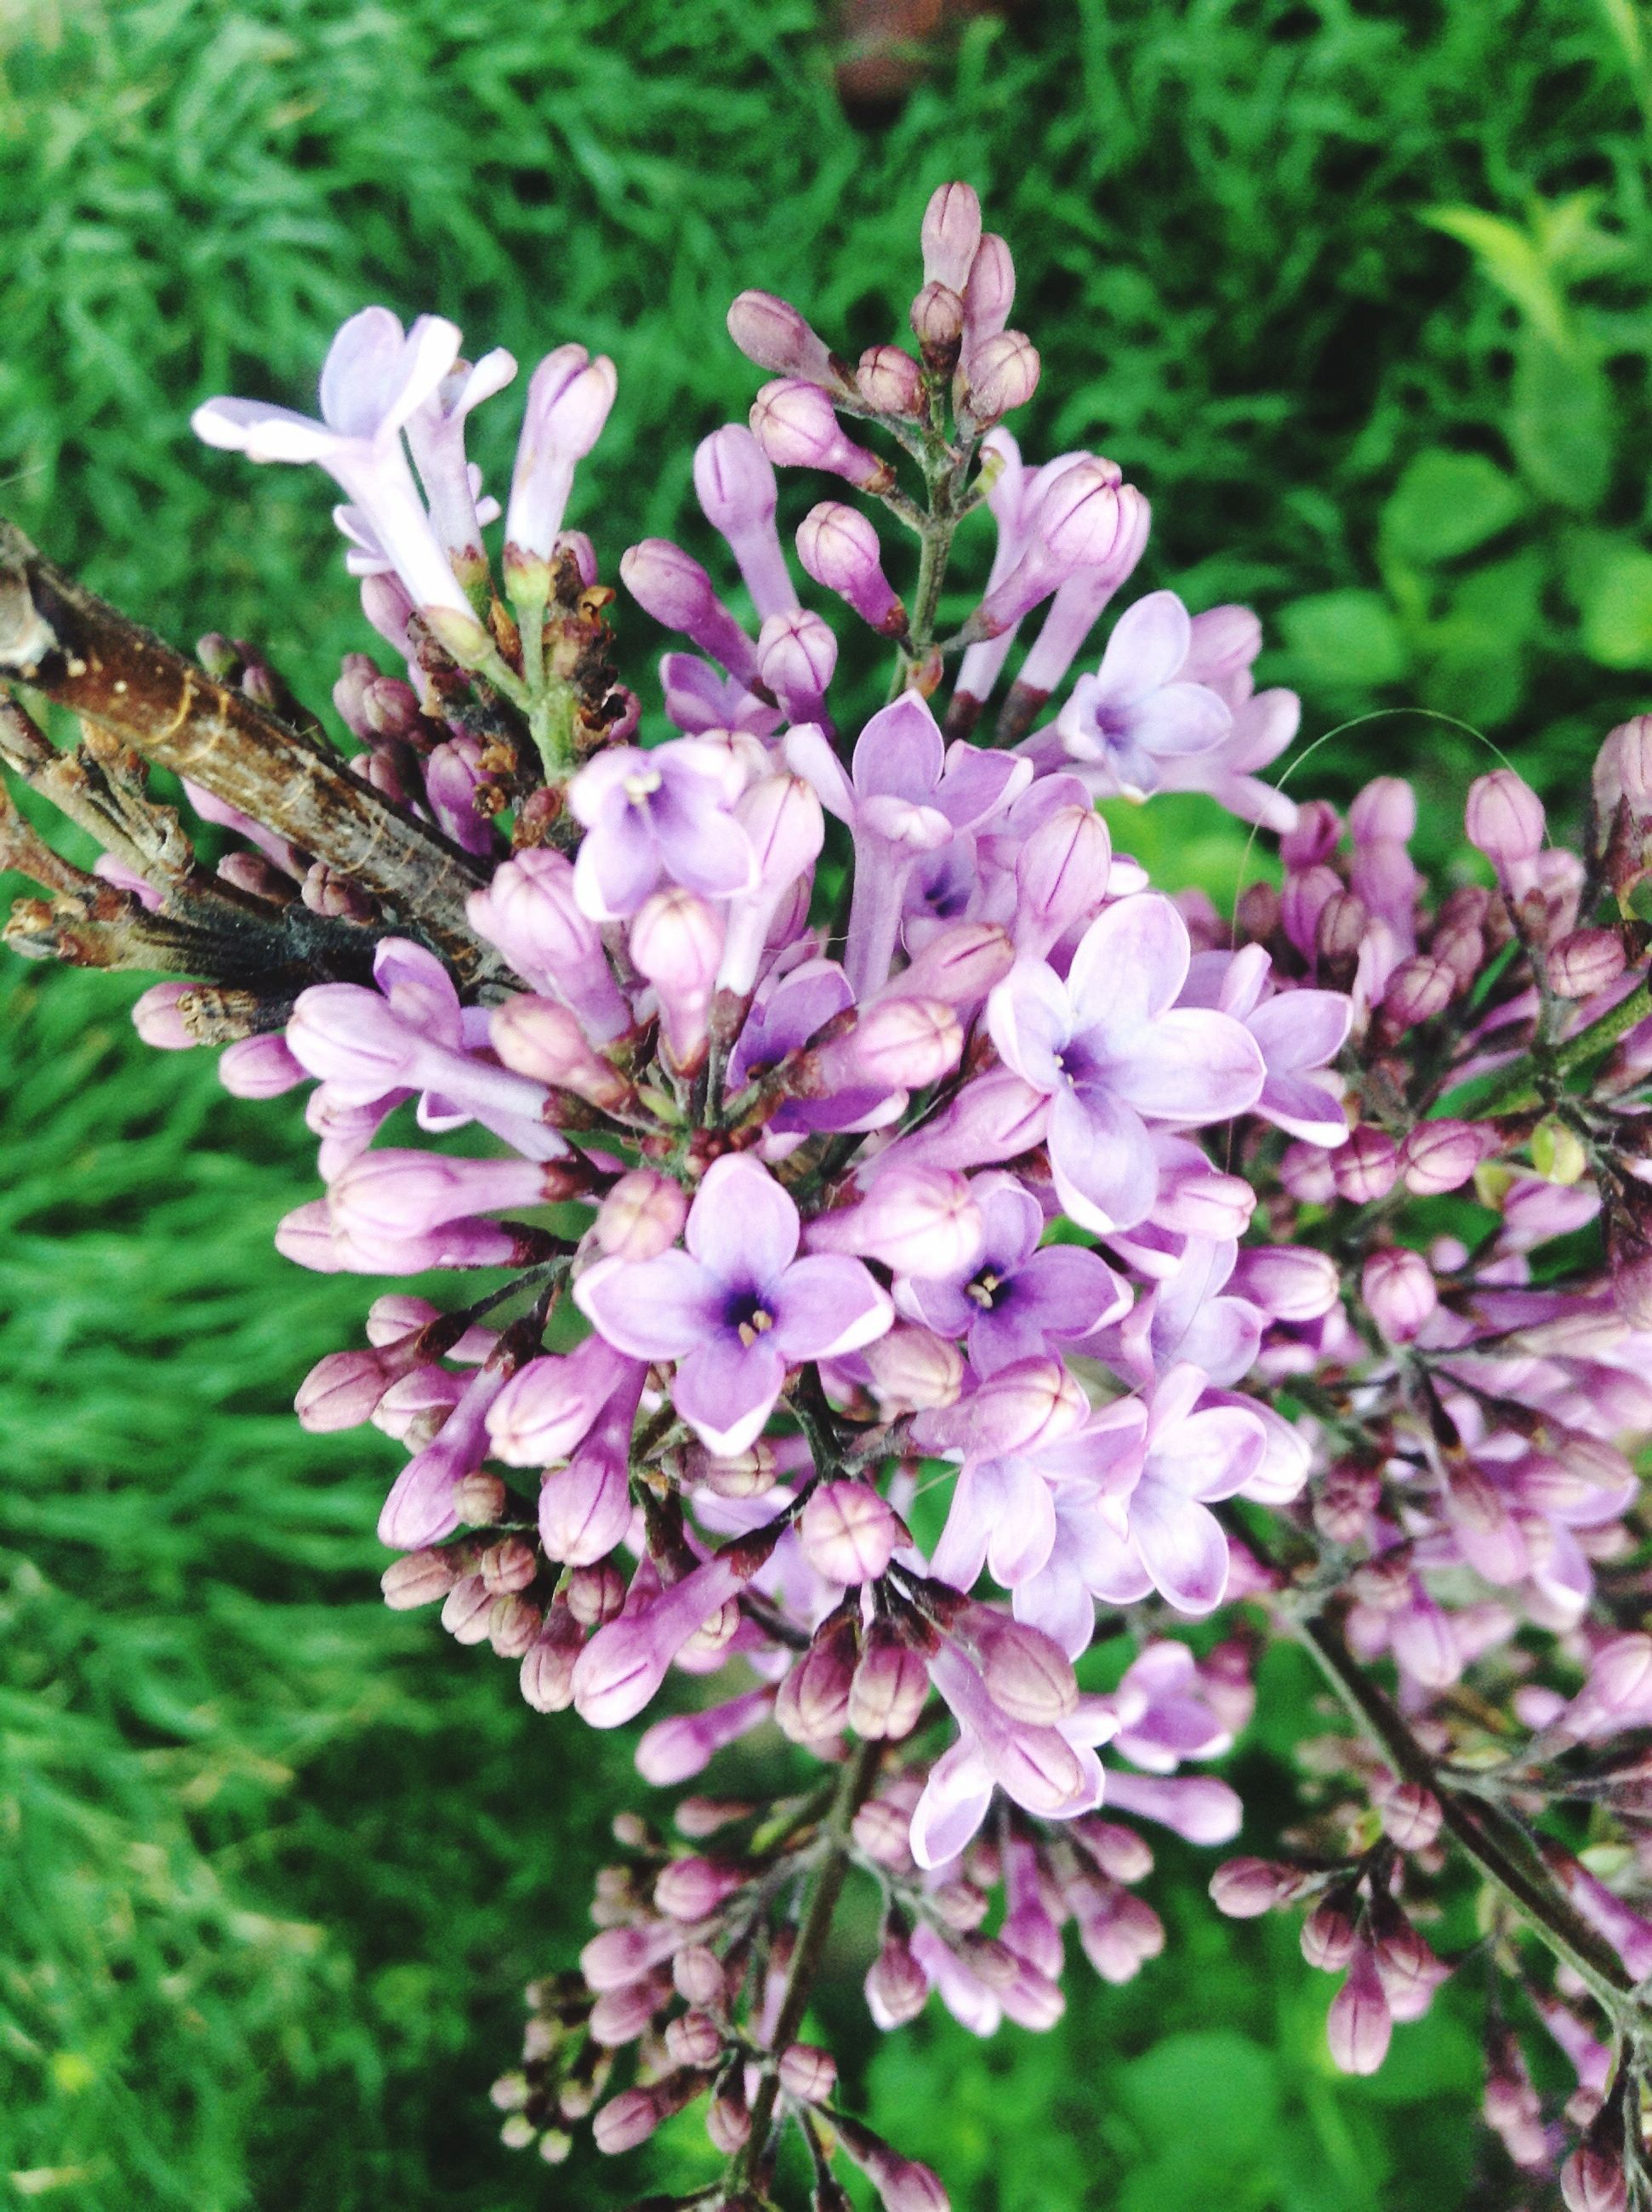 flower, freshness, nature, beauty in nature, growth, fragility, purple, petal, blooming, day, flower head, close-up, no people, outdoors